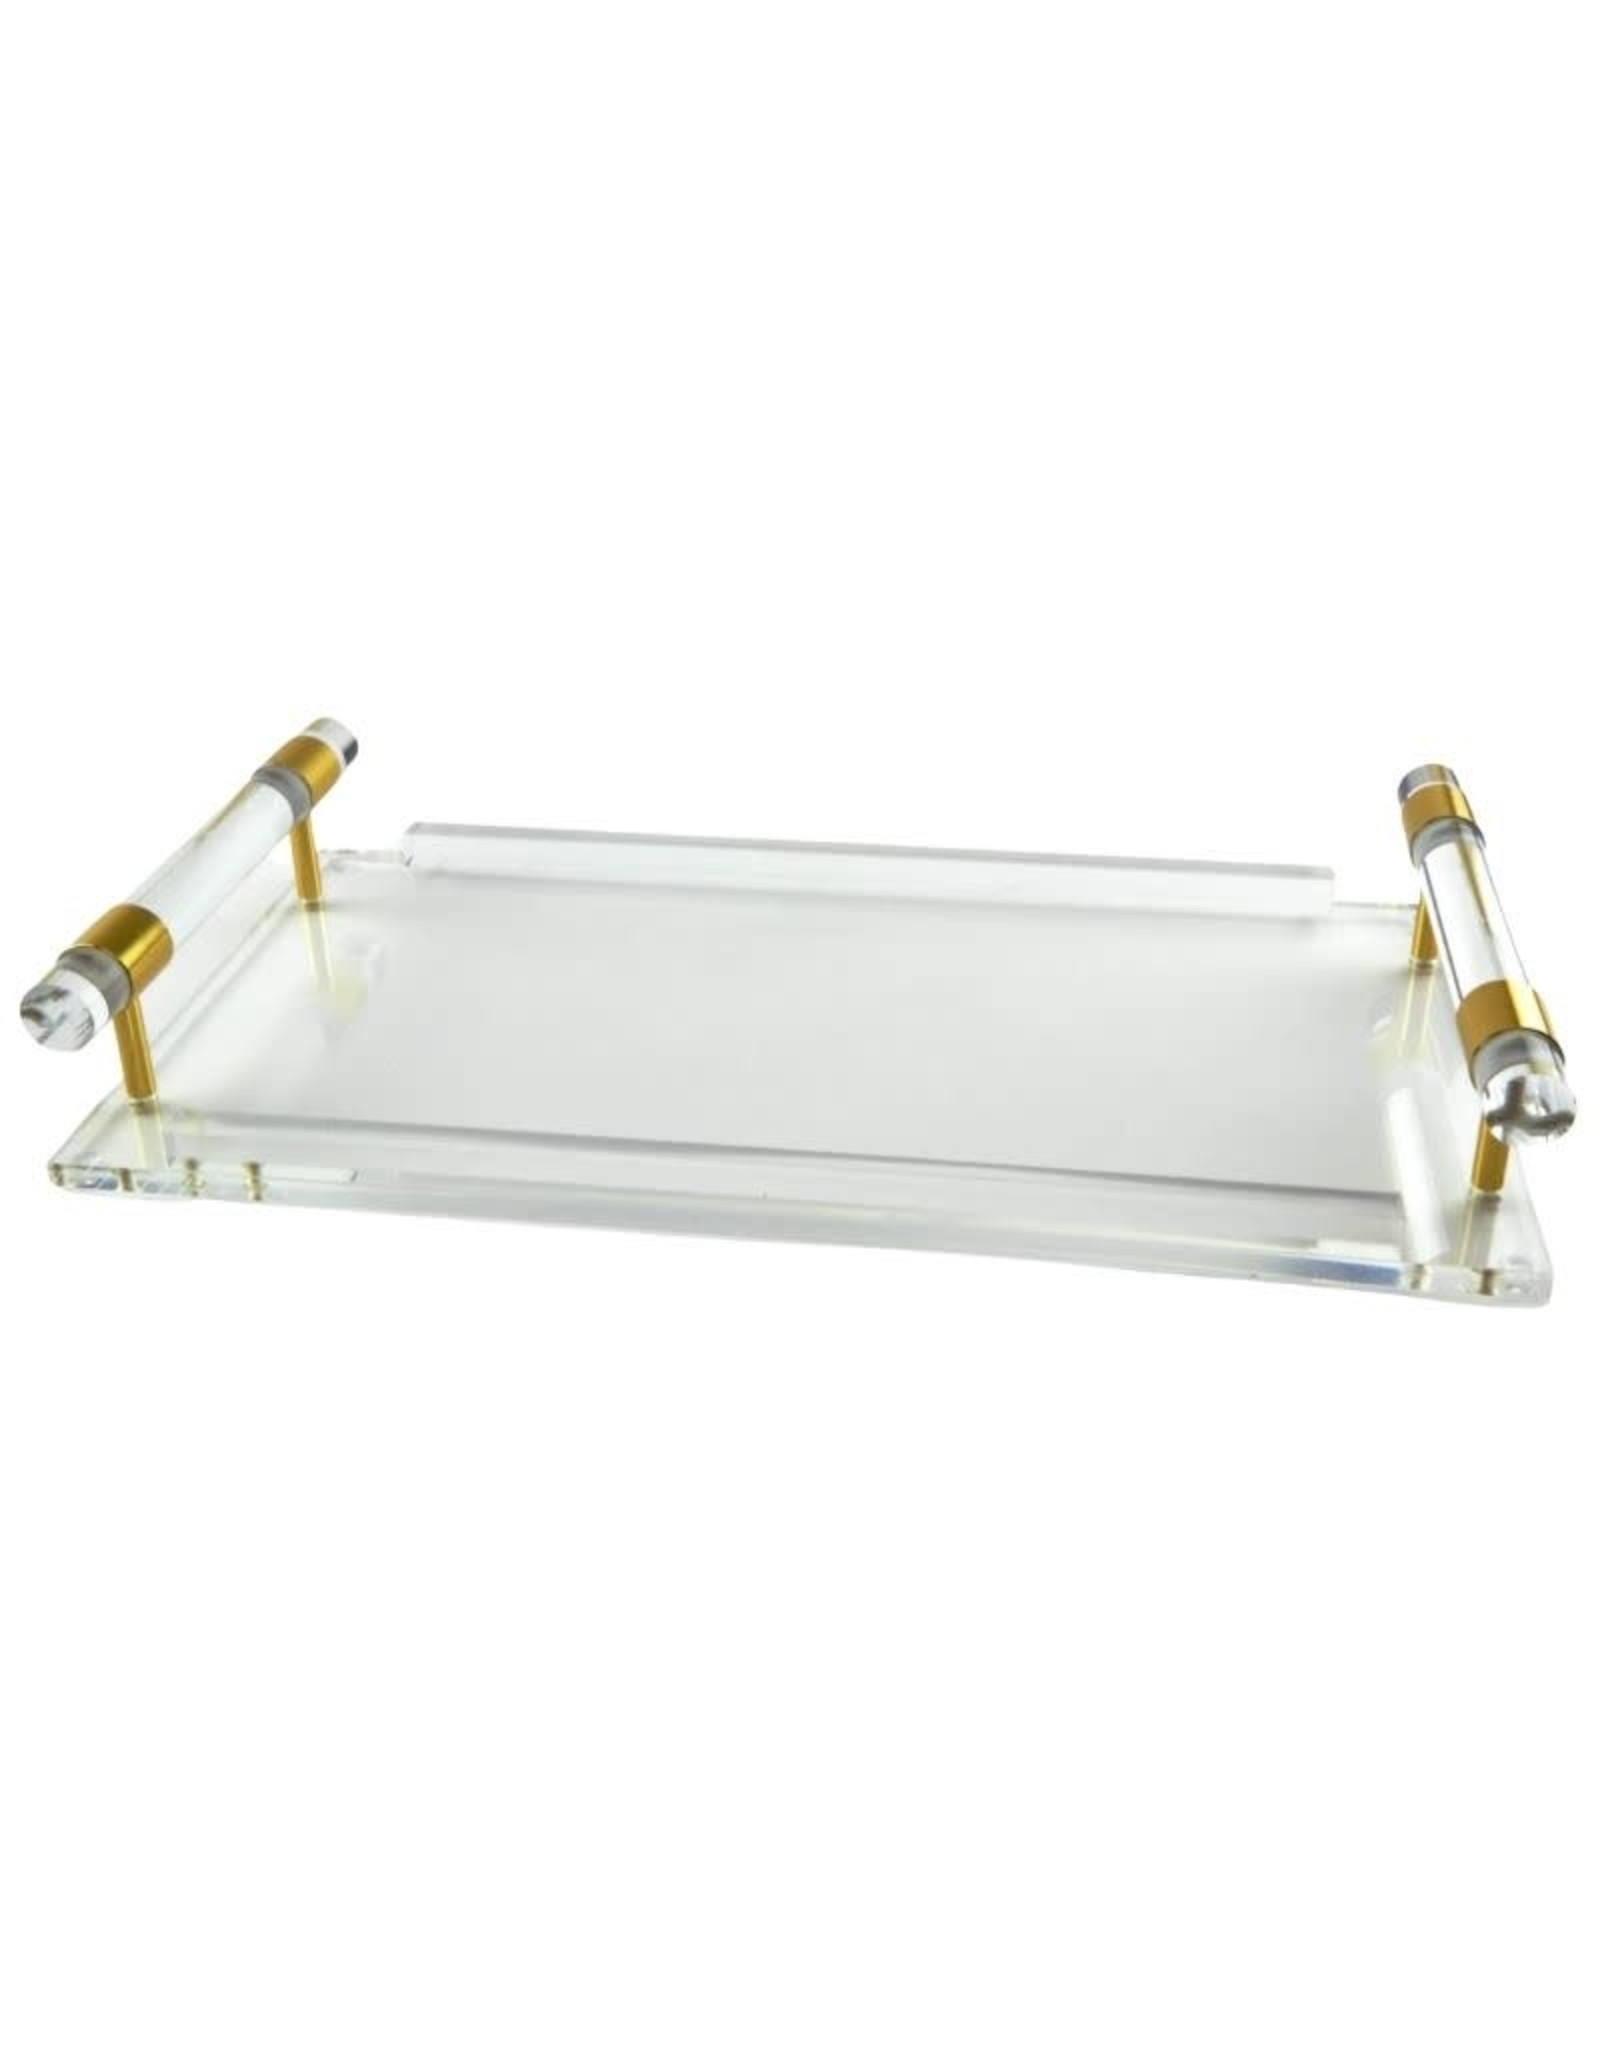 Acrylic Tray With Accent Handle - Gold